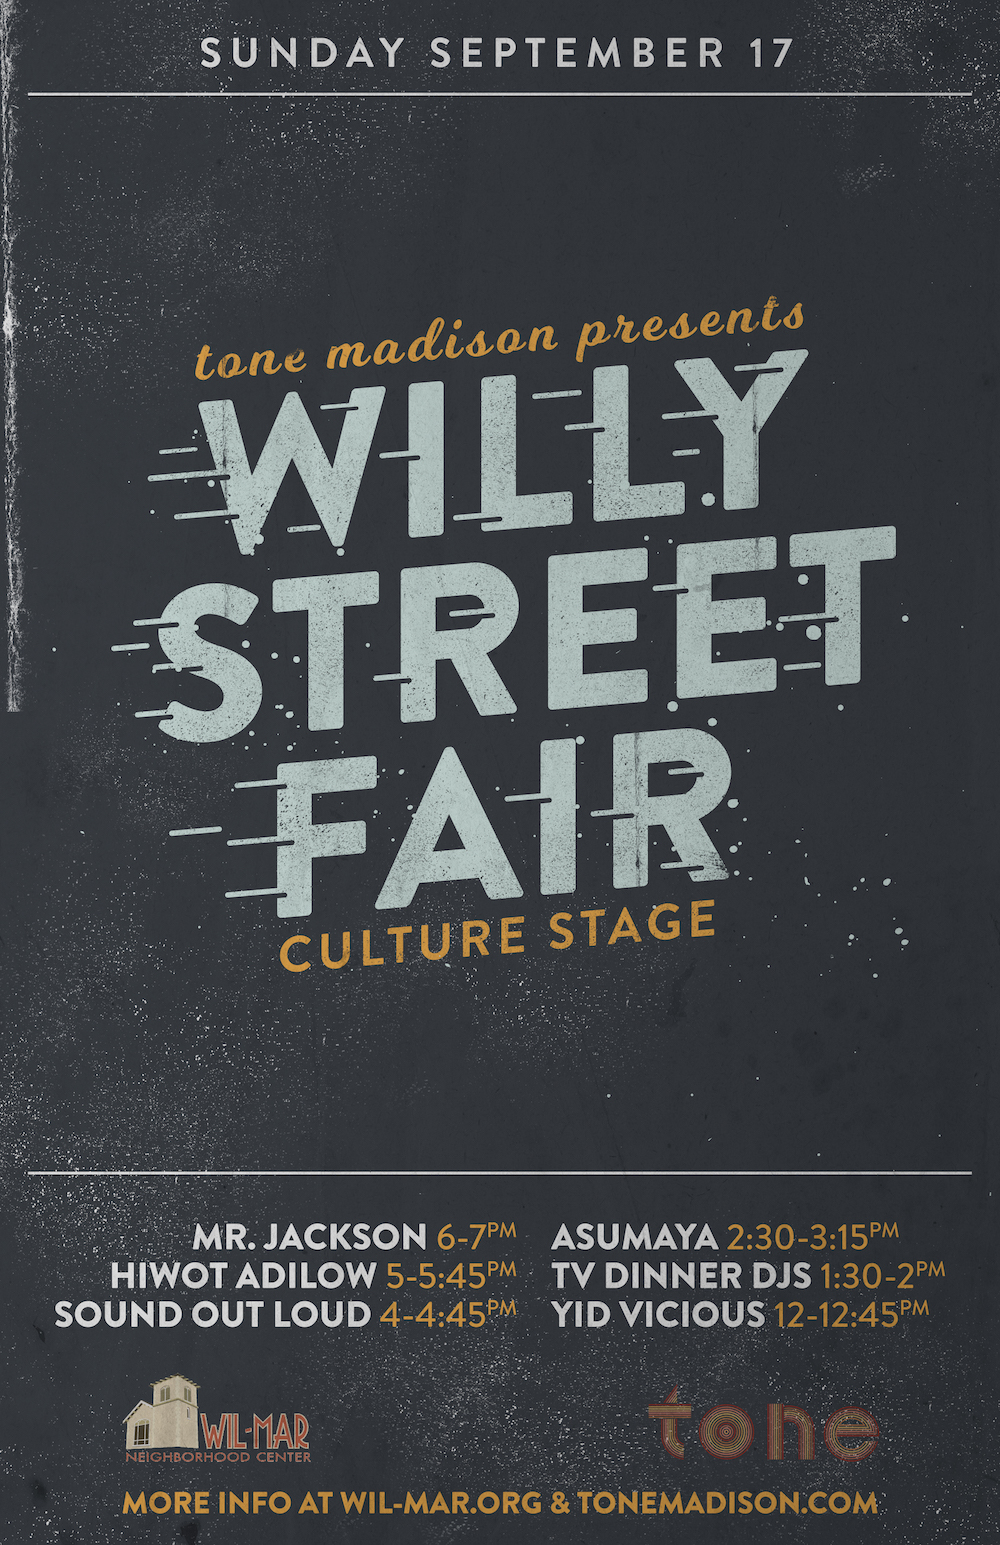 9/17/2017: Willy Street Fair Culture Stage Presented by Tone Madison